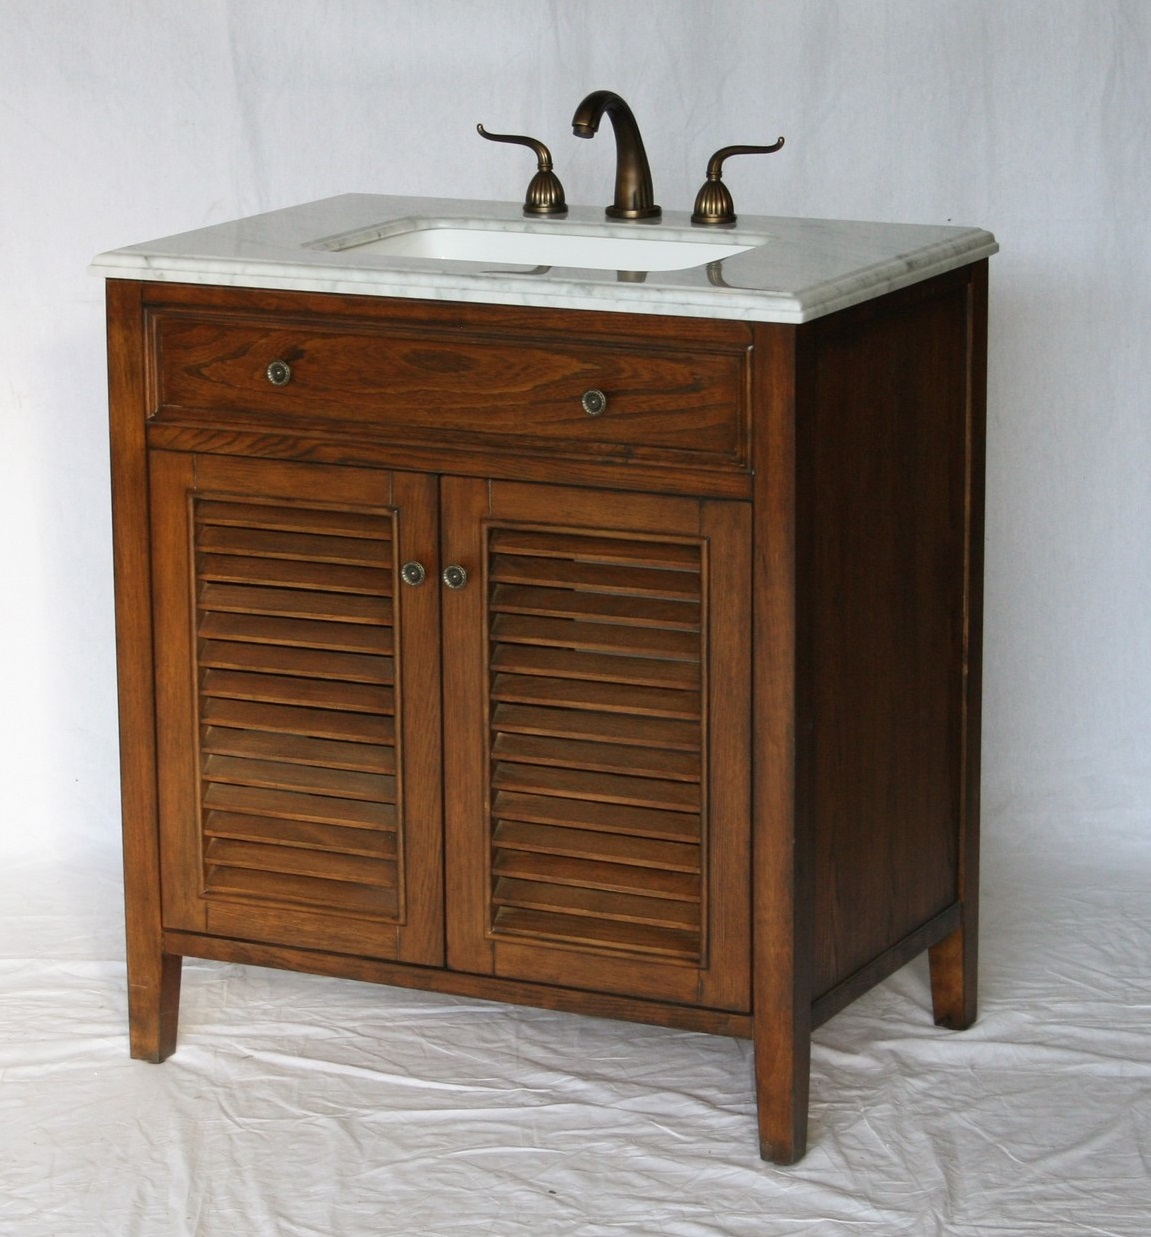 32 inch Bathroom Vanity Coastal Cottage Beach Vintage Style Walnut Color  32  Wx21 Bathroom Vanities Vanity Coastal Cottage Beach House. 32 Inch Bathroom Vanity. Home Design Ideas